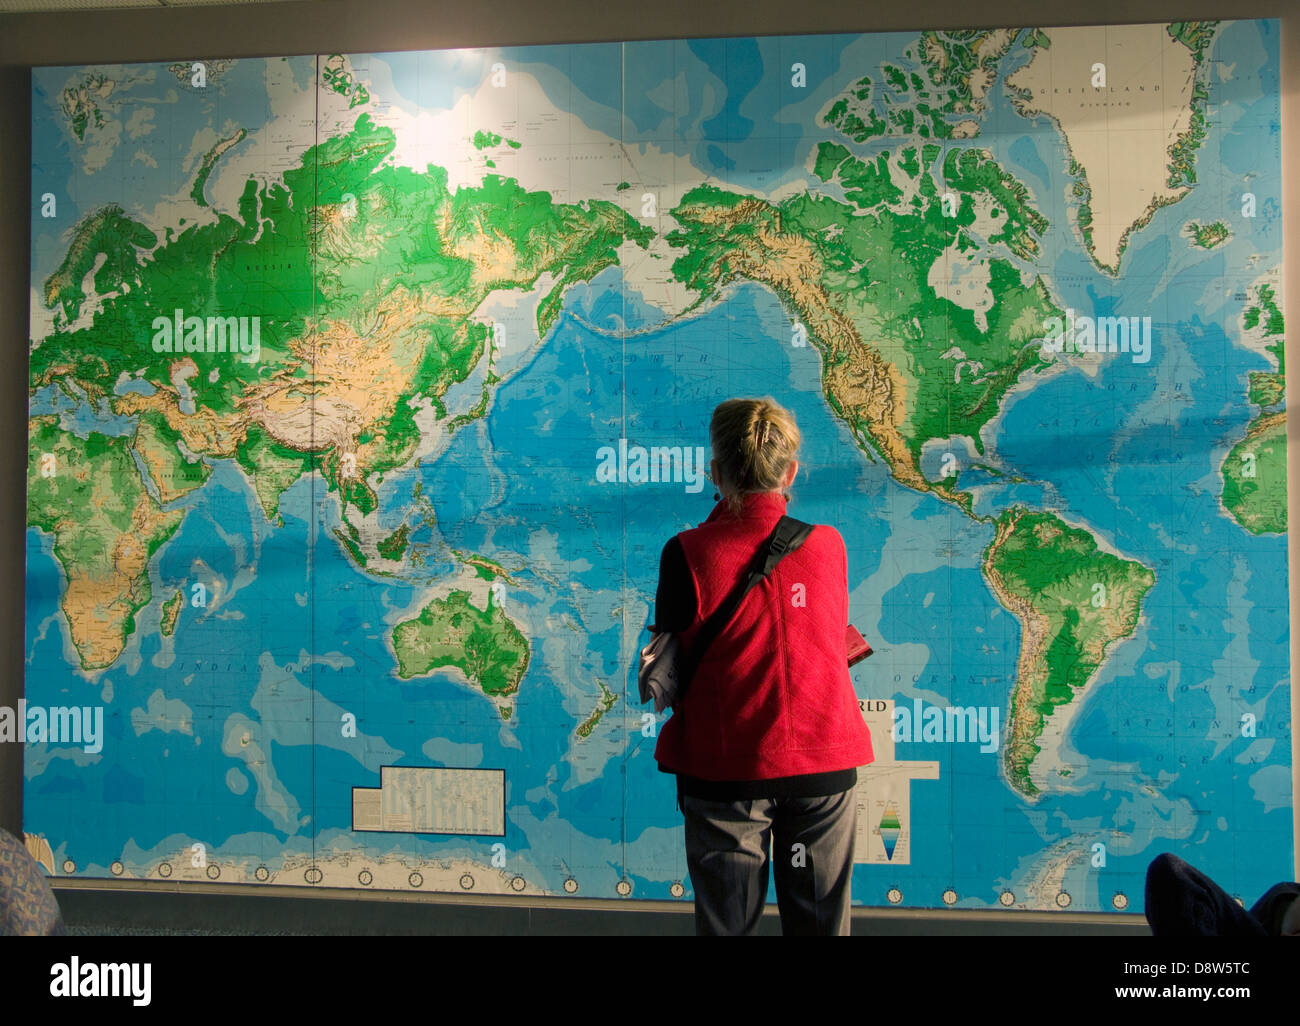 A woman in a red jacket, back view, looking at a large map of the world on a wall at Auckland Airport - Stock Image